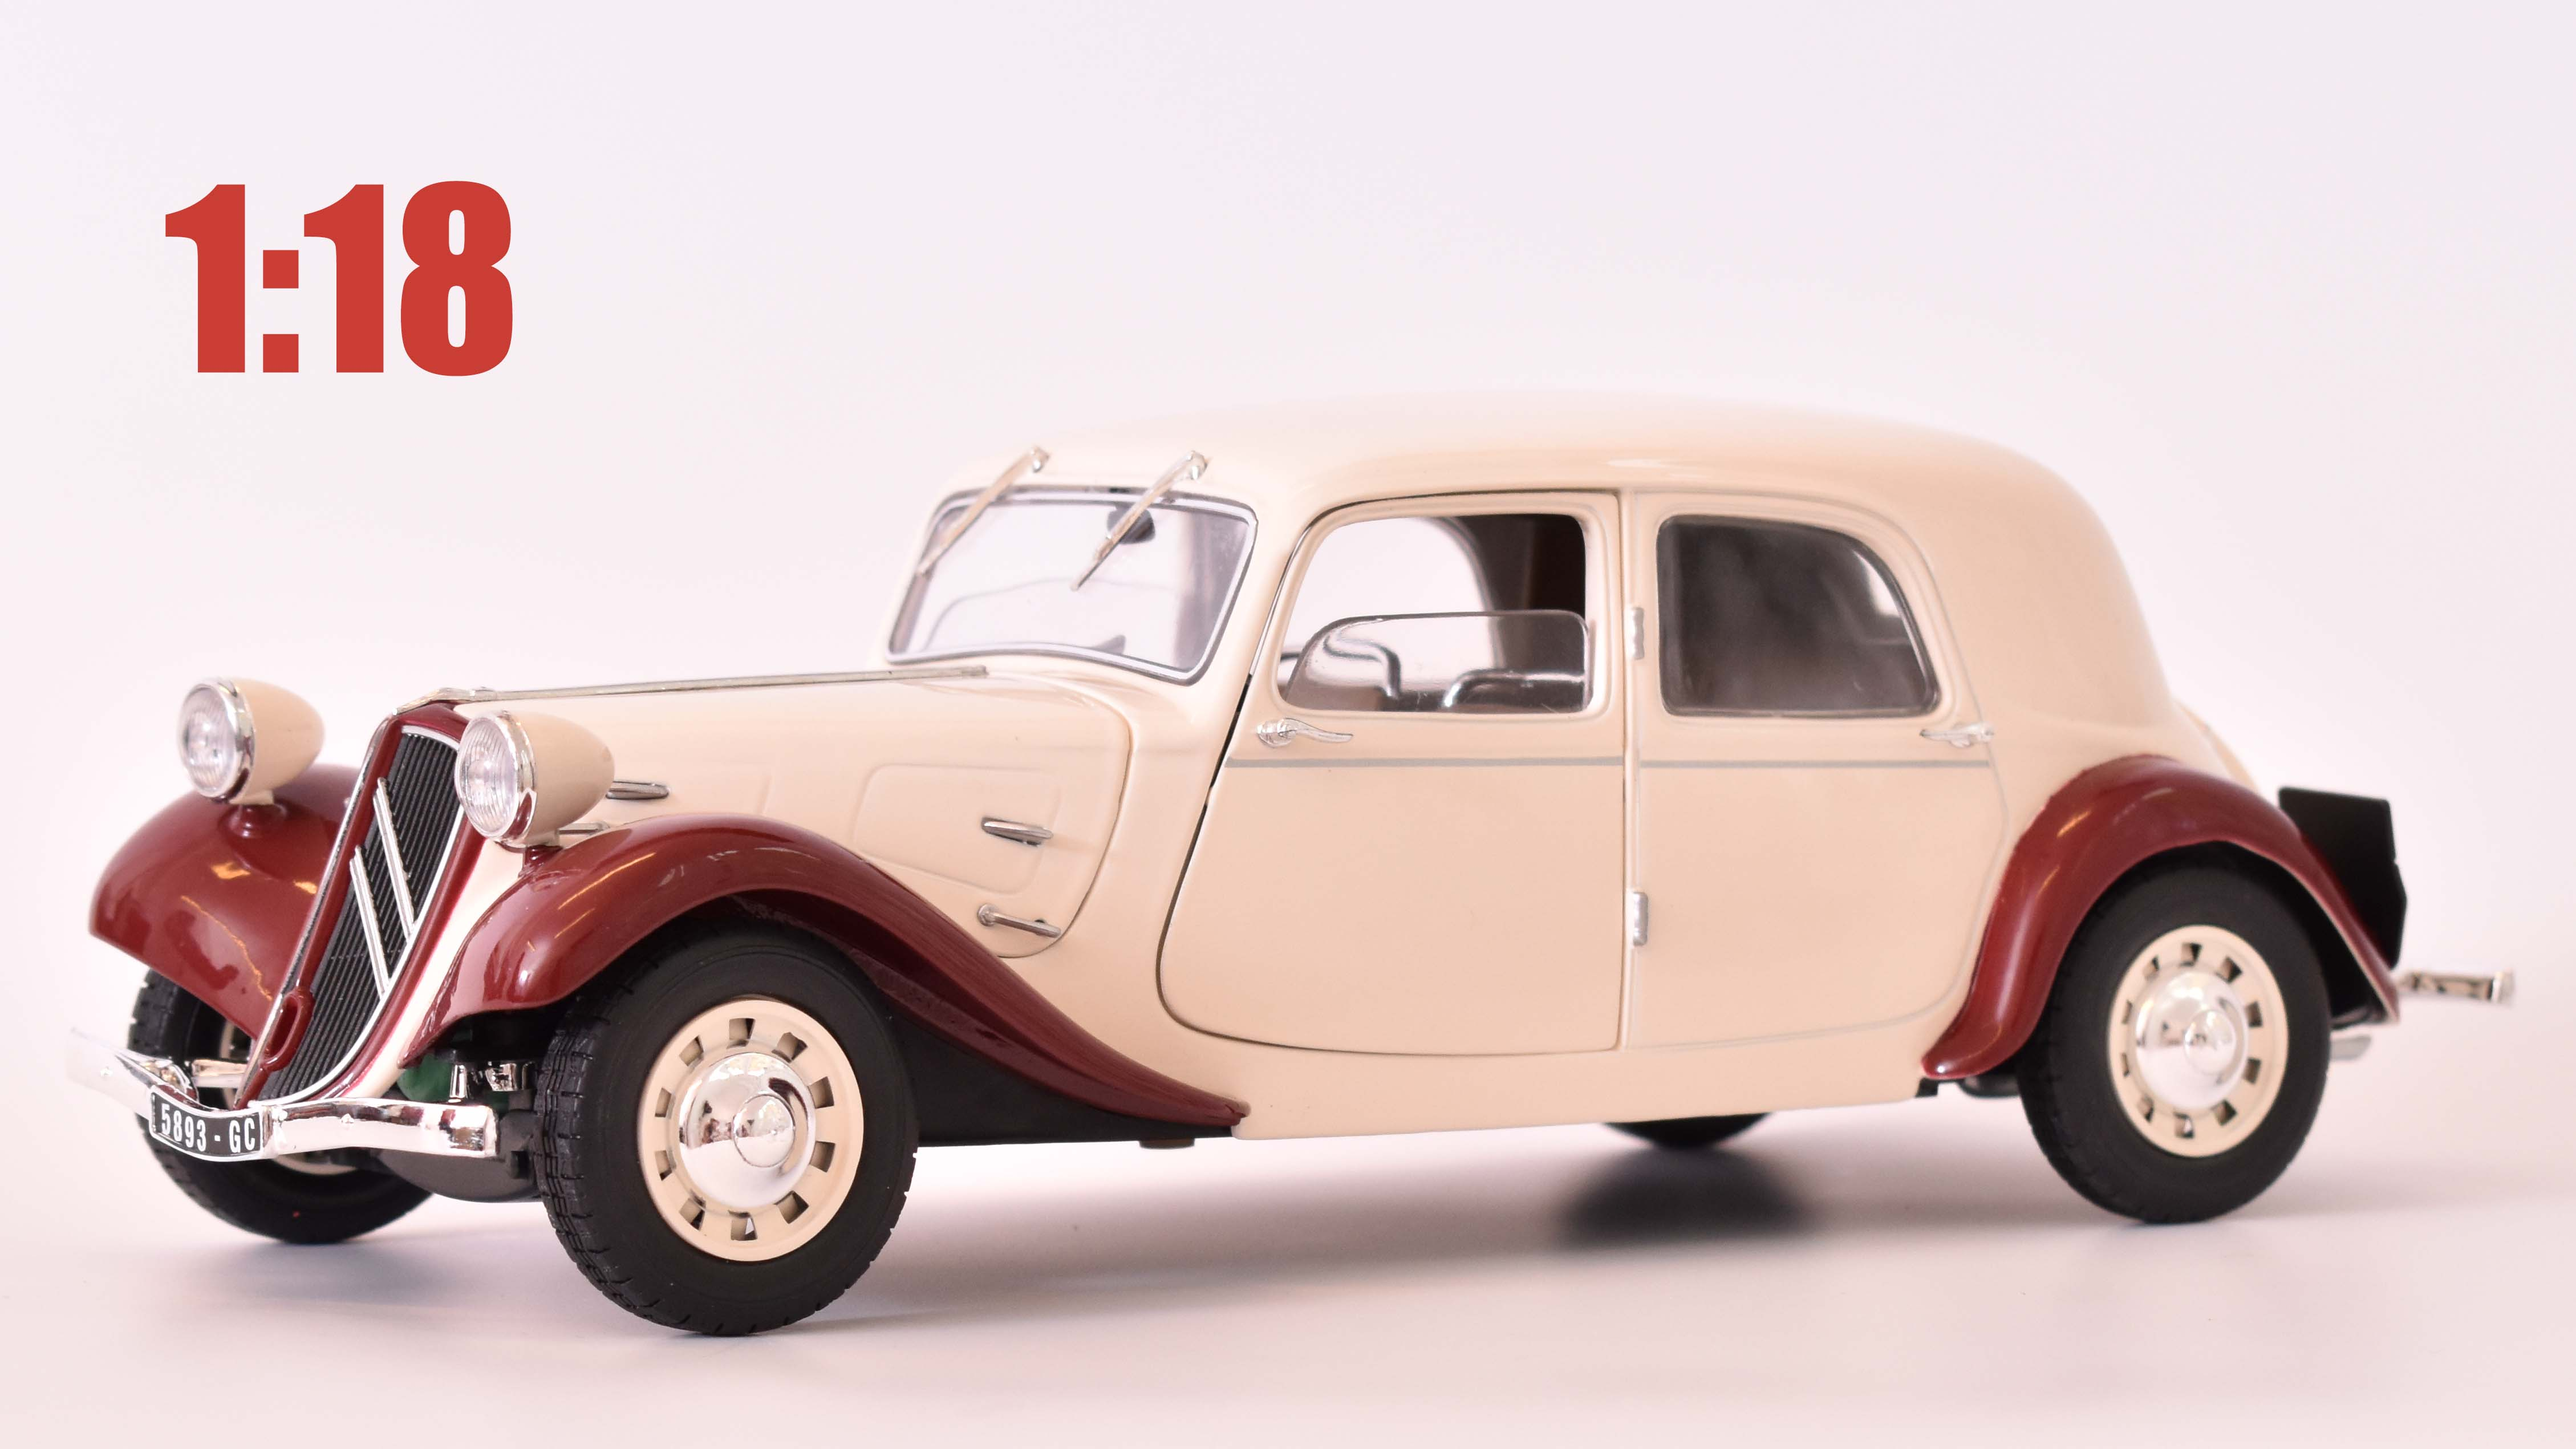 Citroen Traction 11CV - 1938 1:18 - Solido časopis AutoModels s modelem